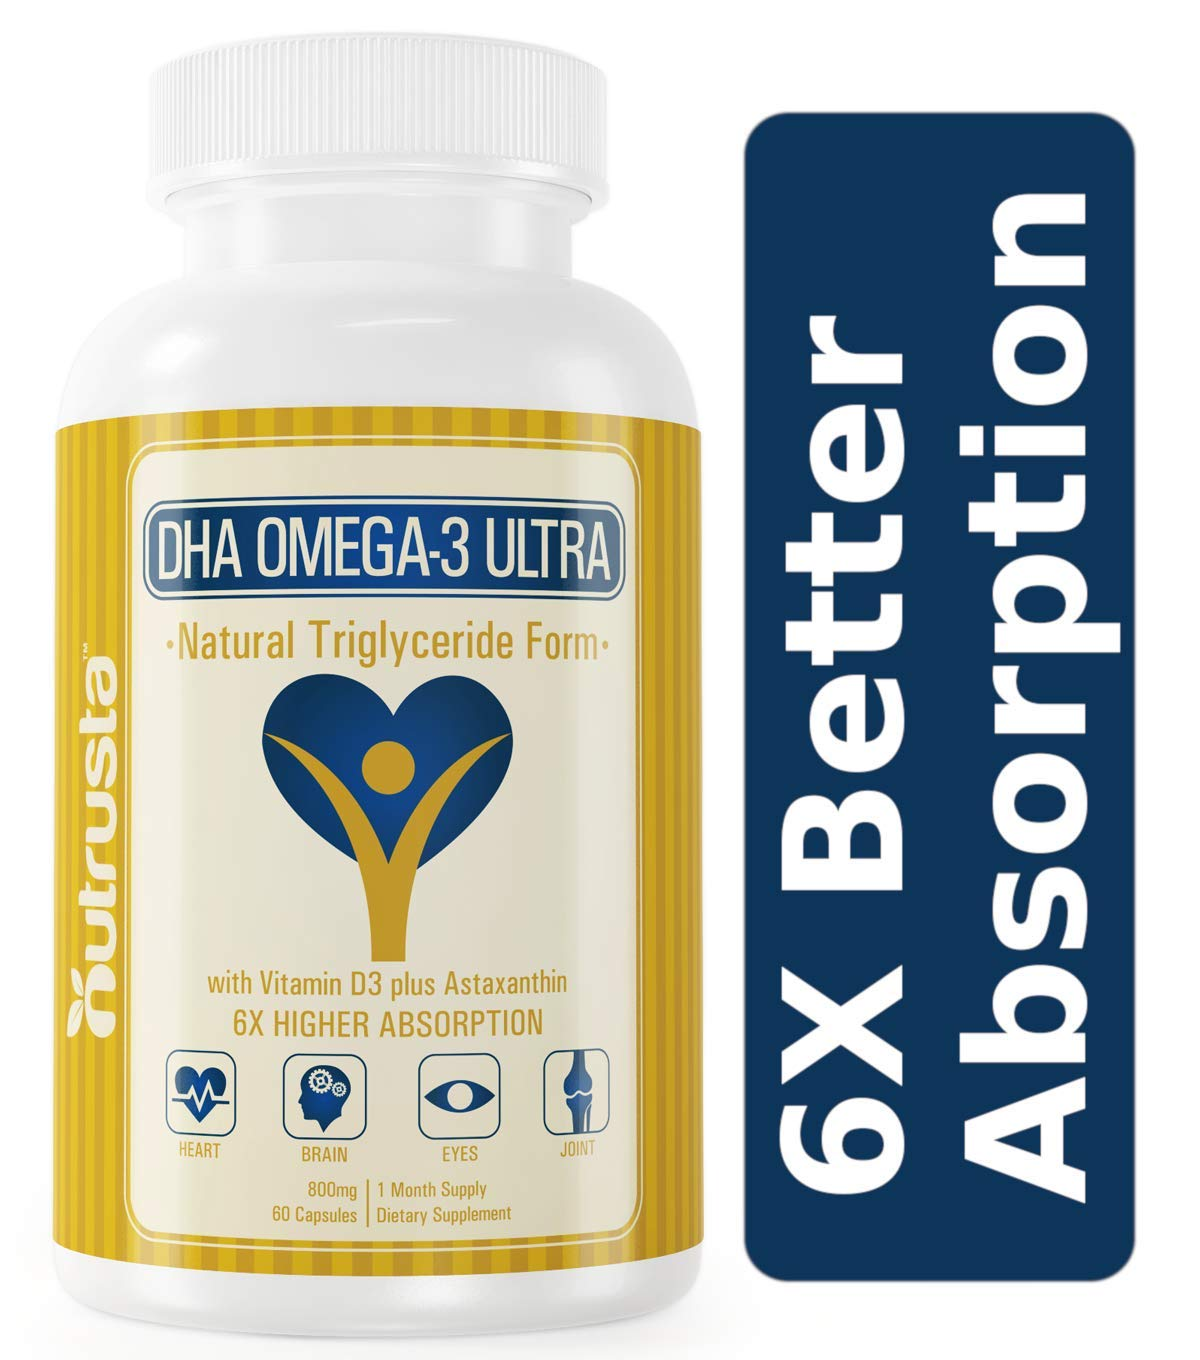 DHA Omega-3 Ultra Fish Oil, High DHA Supplement, 6X Better Absorption* Vitamin D3, Astaxanthin, 60 Small Softgels, Burpless by Nutrusta